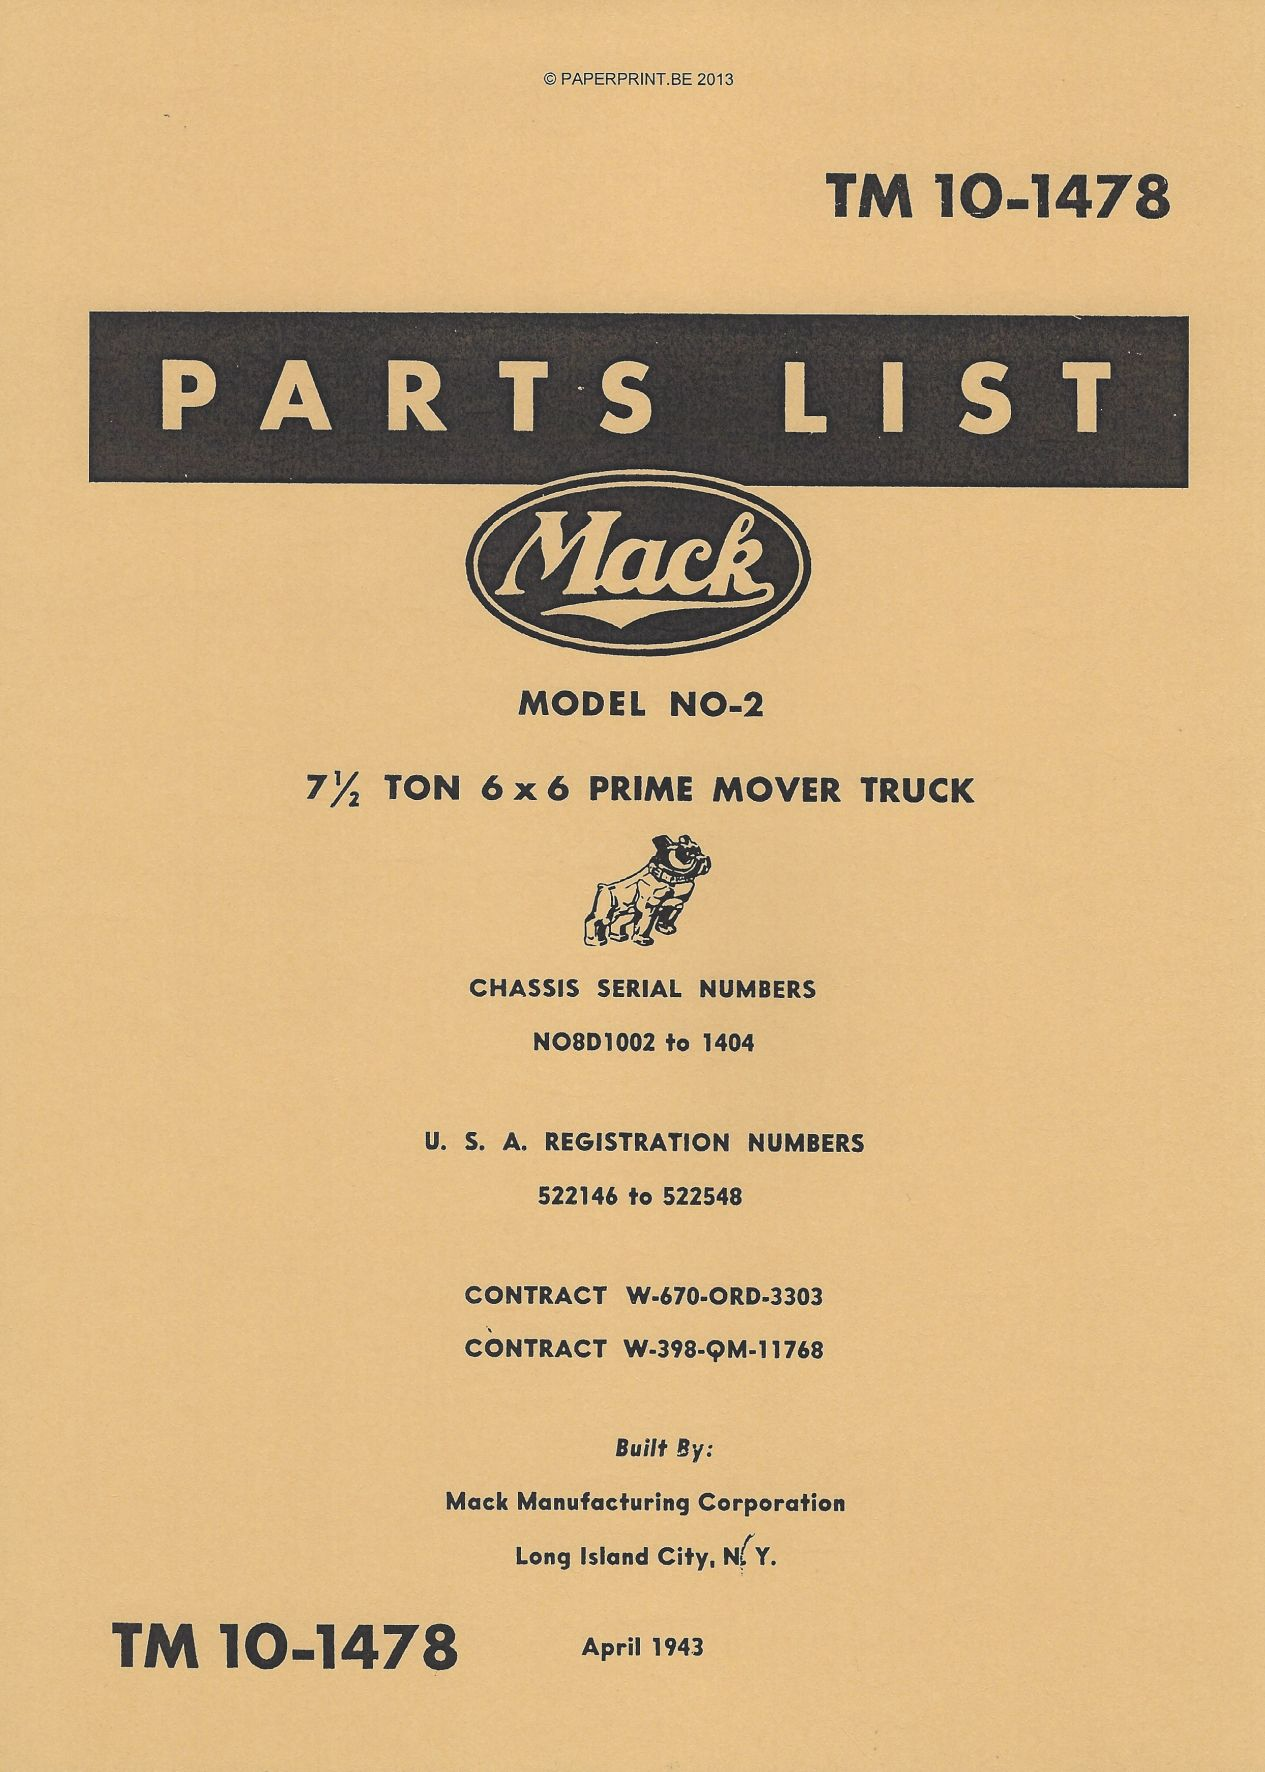 TM 10-1478 US PARTS LIST FOR 7½ - TON  6x6 PRIME MOVER TRUCK (MACK NO-2)